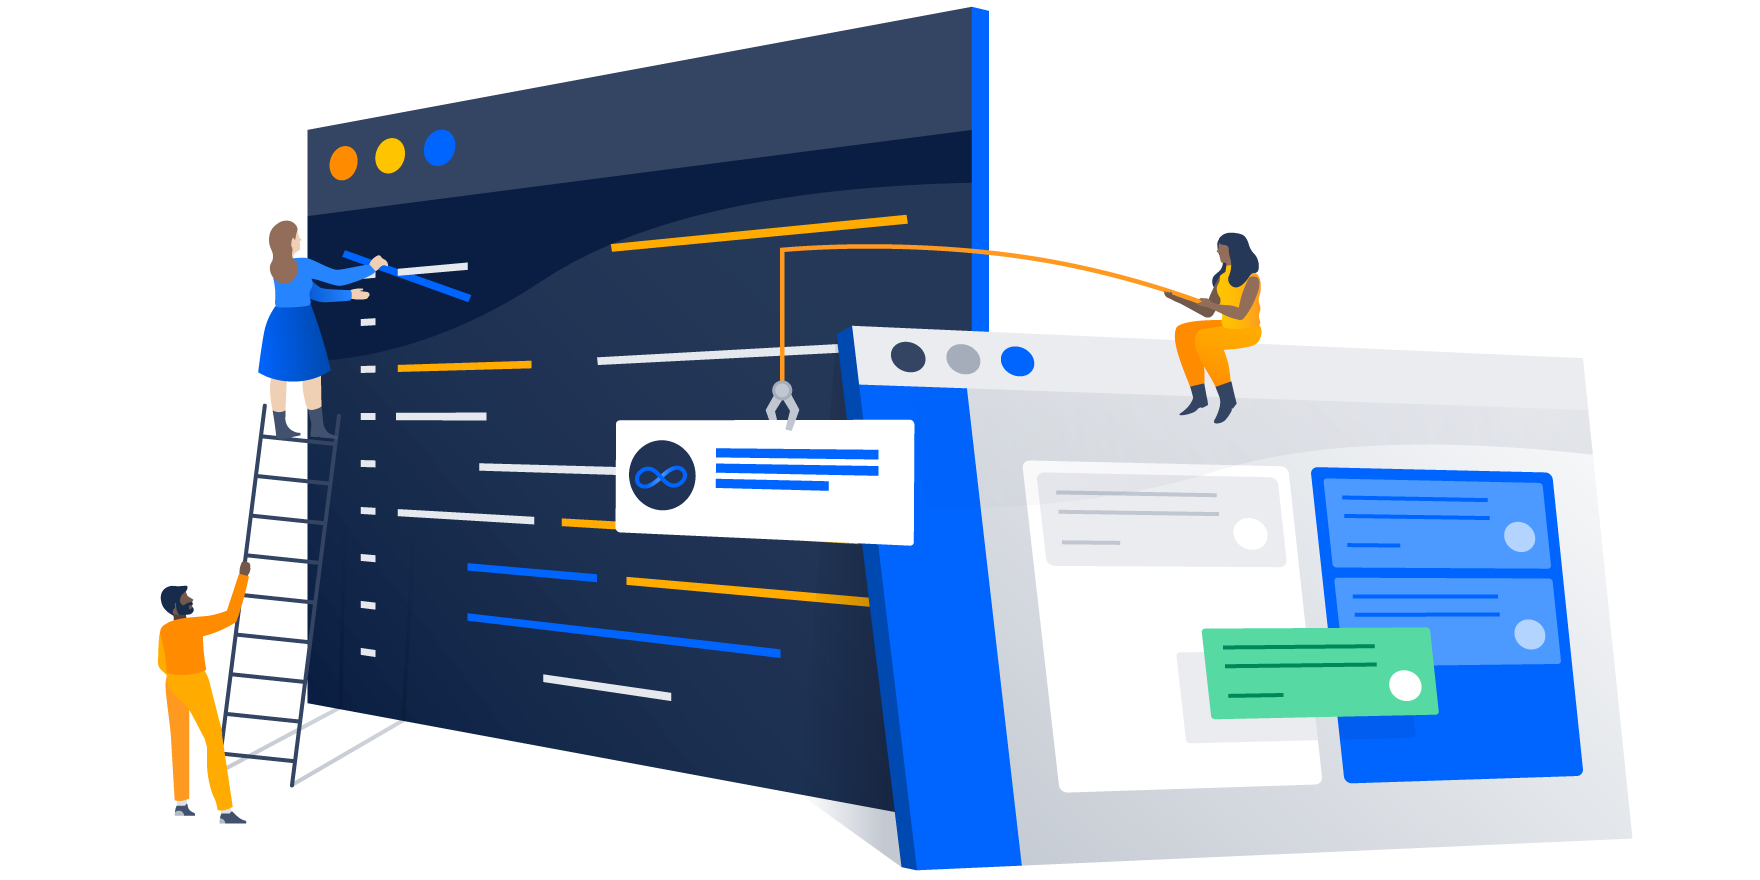 Illustration of code terminal and a Jira ticket being brought over